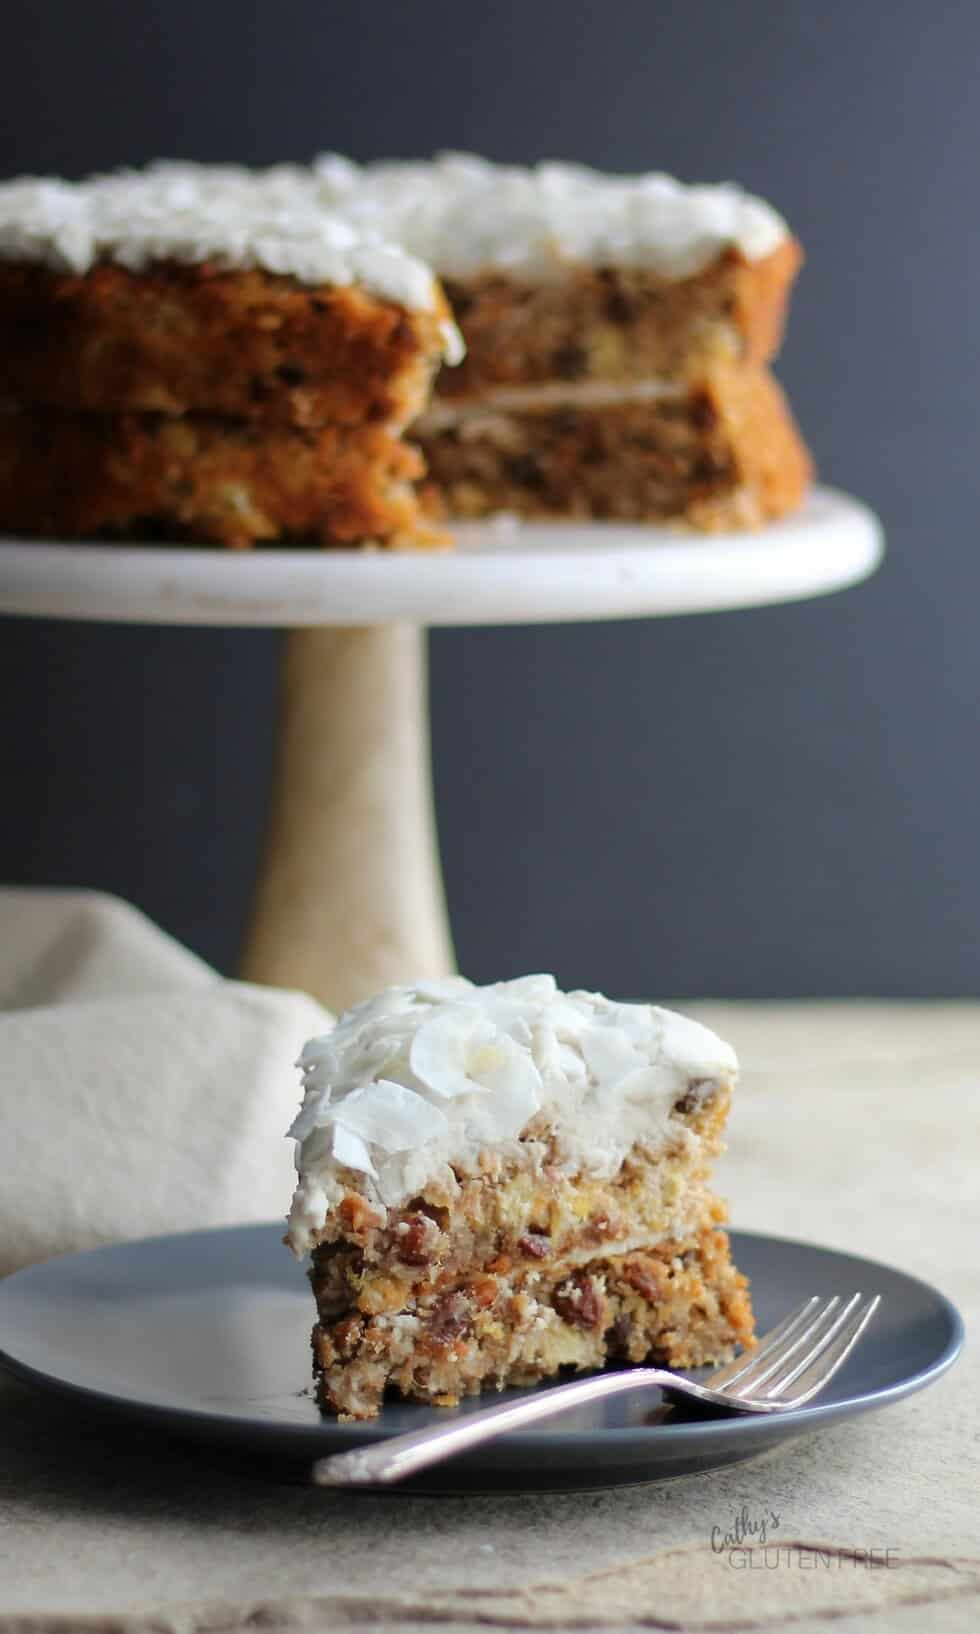 Gluten Free Carrot Cake Recipe With Pineapple